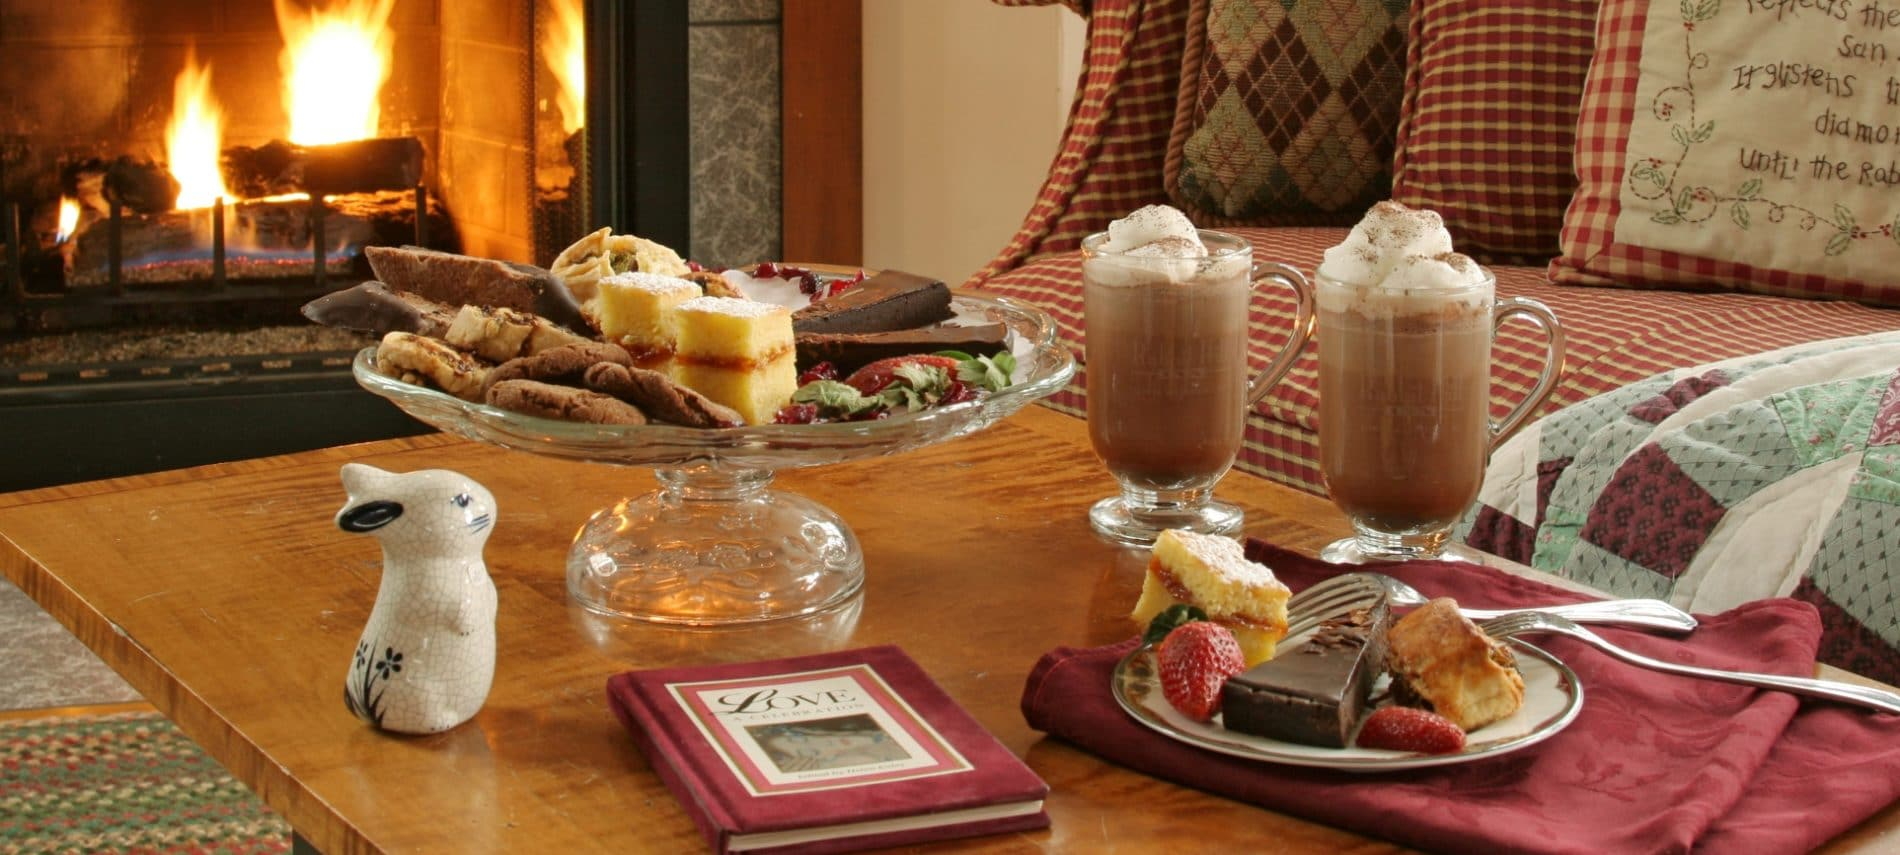 two cups of cocoa and sweets on a table in front of a fire